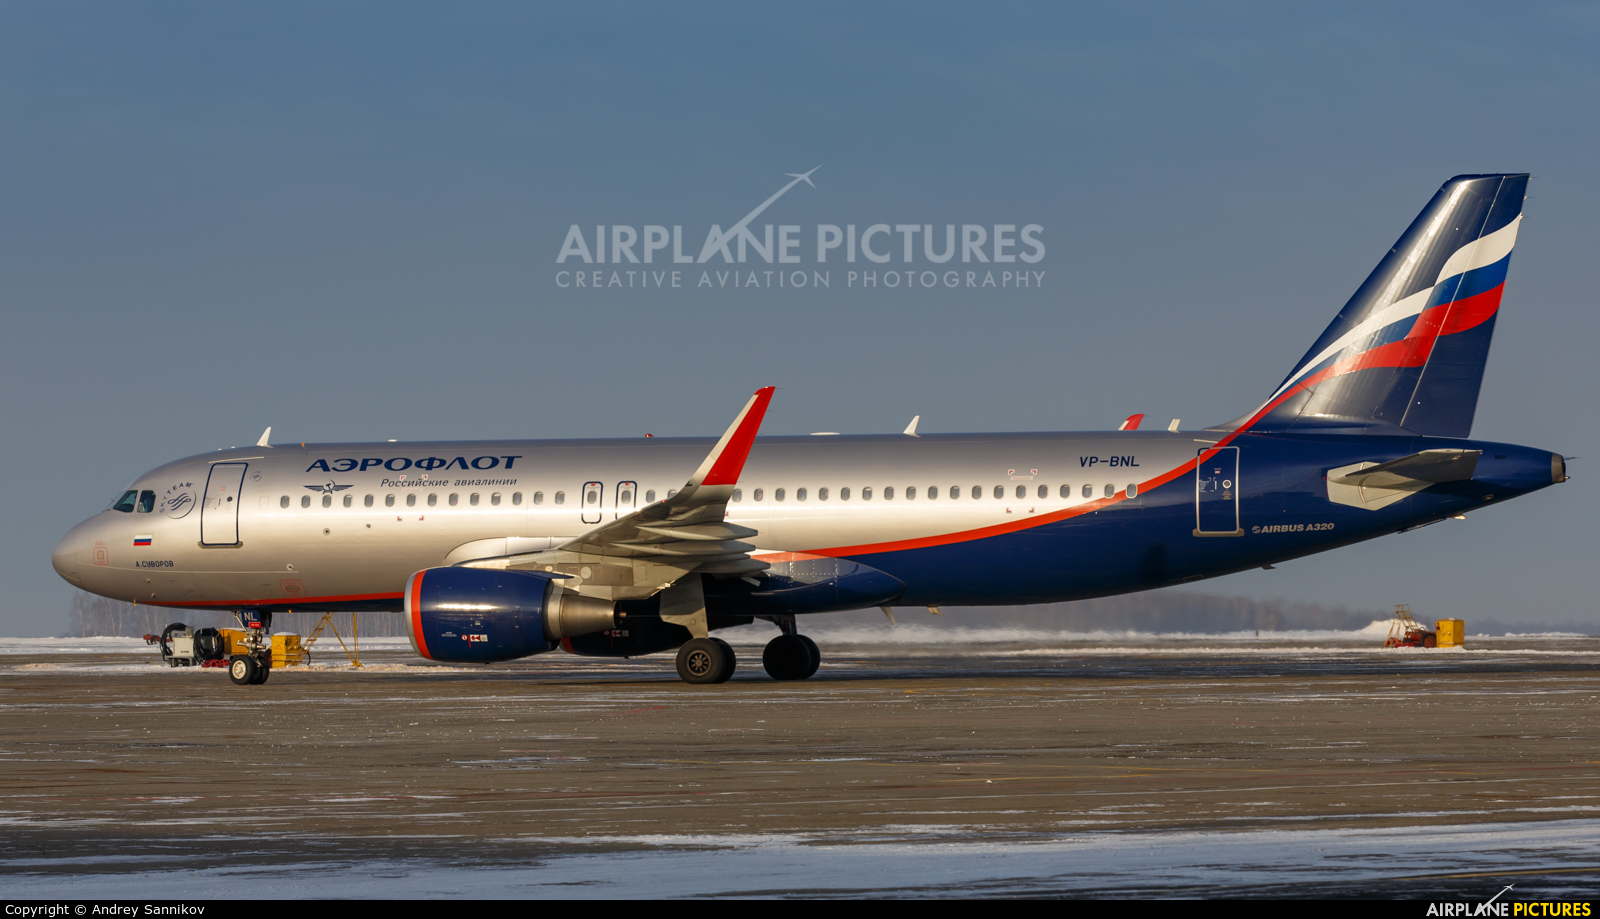 Aeroflot VP-BNL aircraft at Chelyabinsk